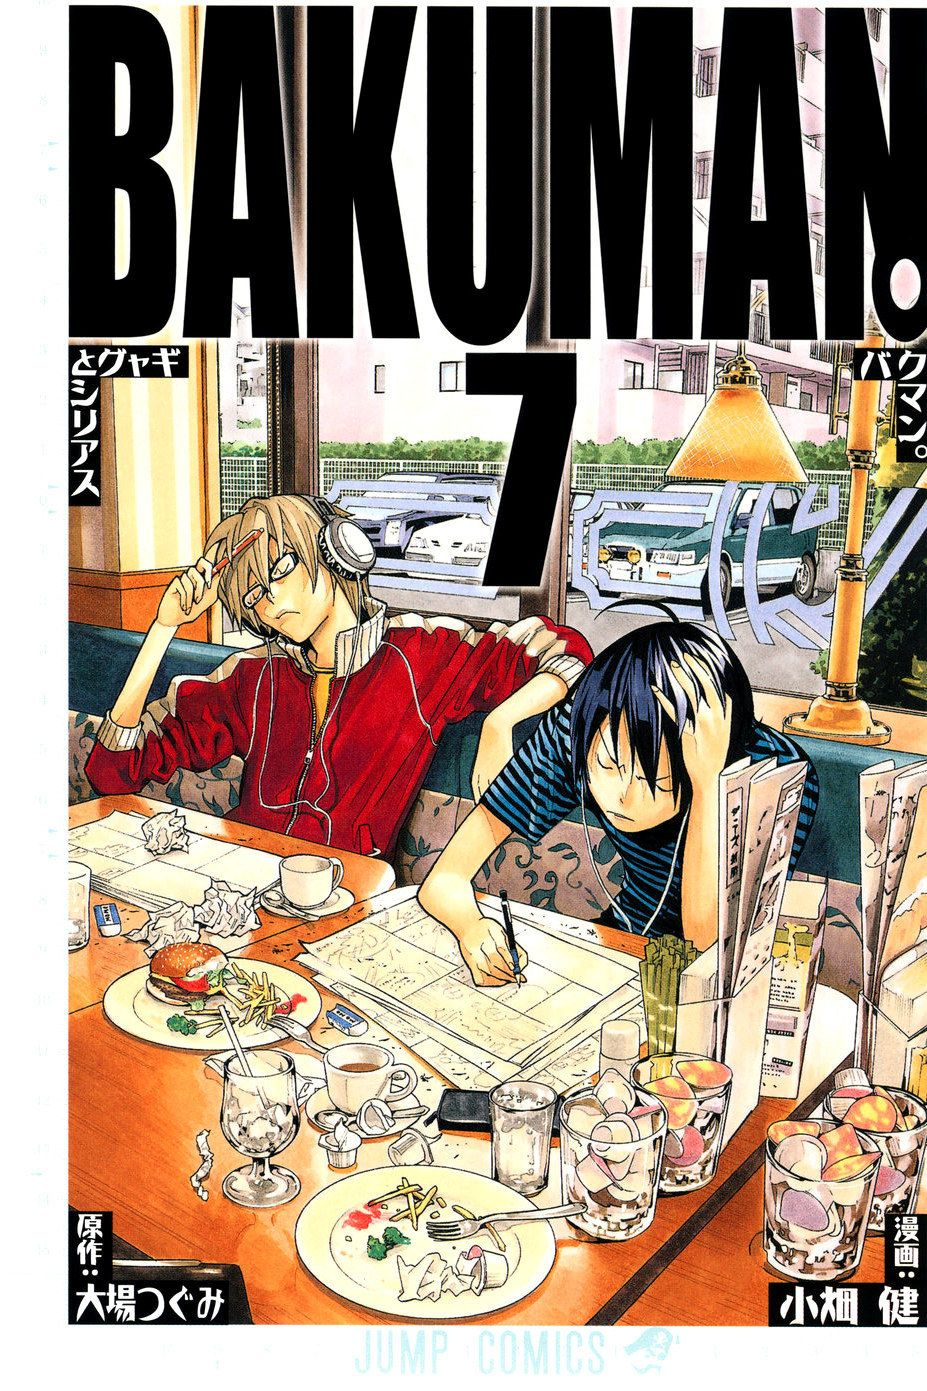 If you loved The Ghost Writer, you should read Bakuman